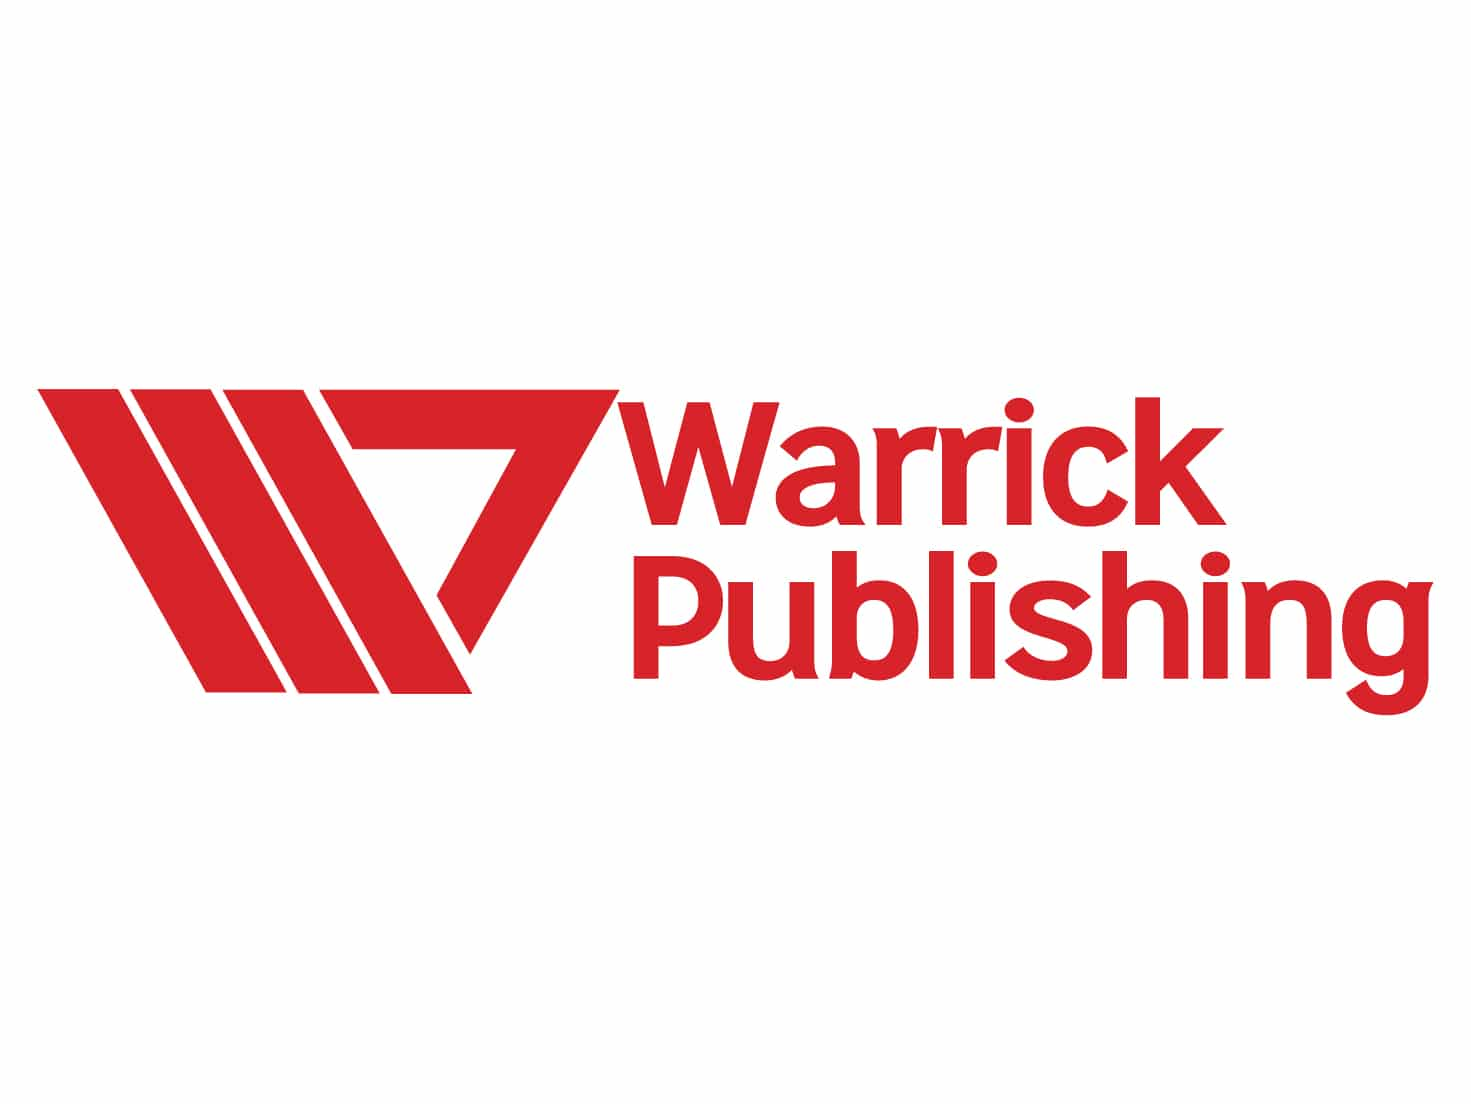 Warrick Publishing